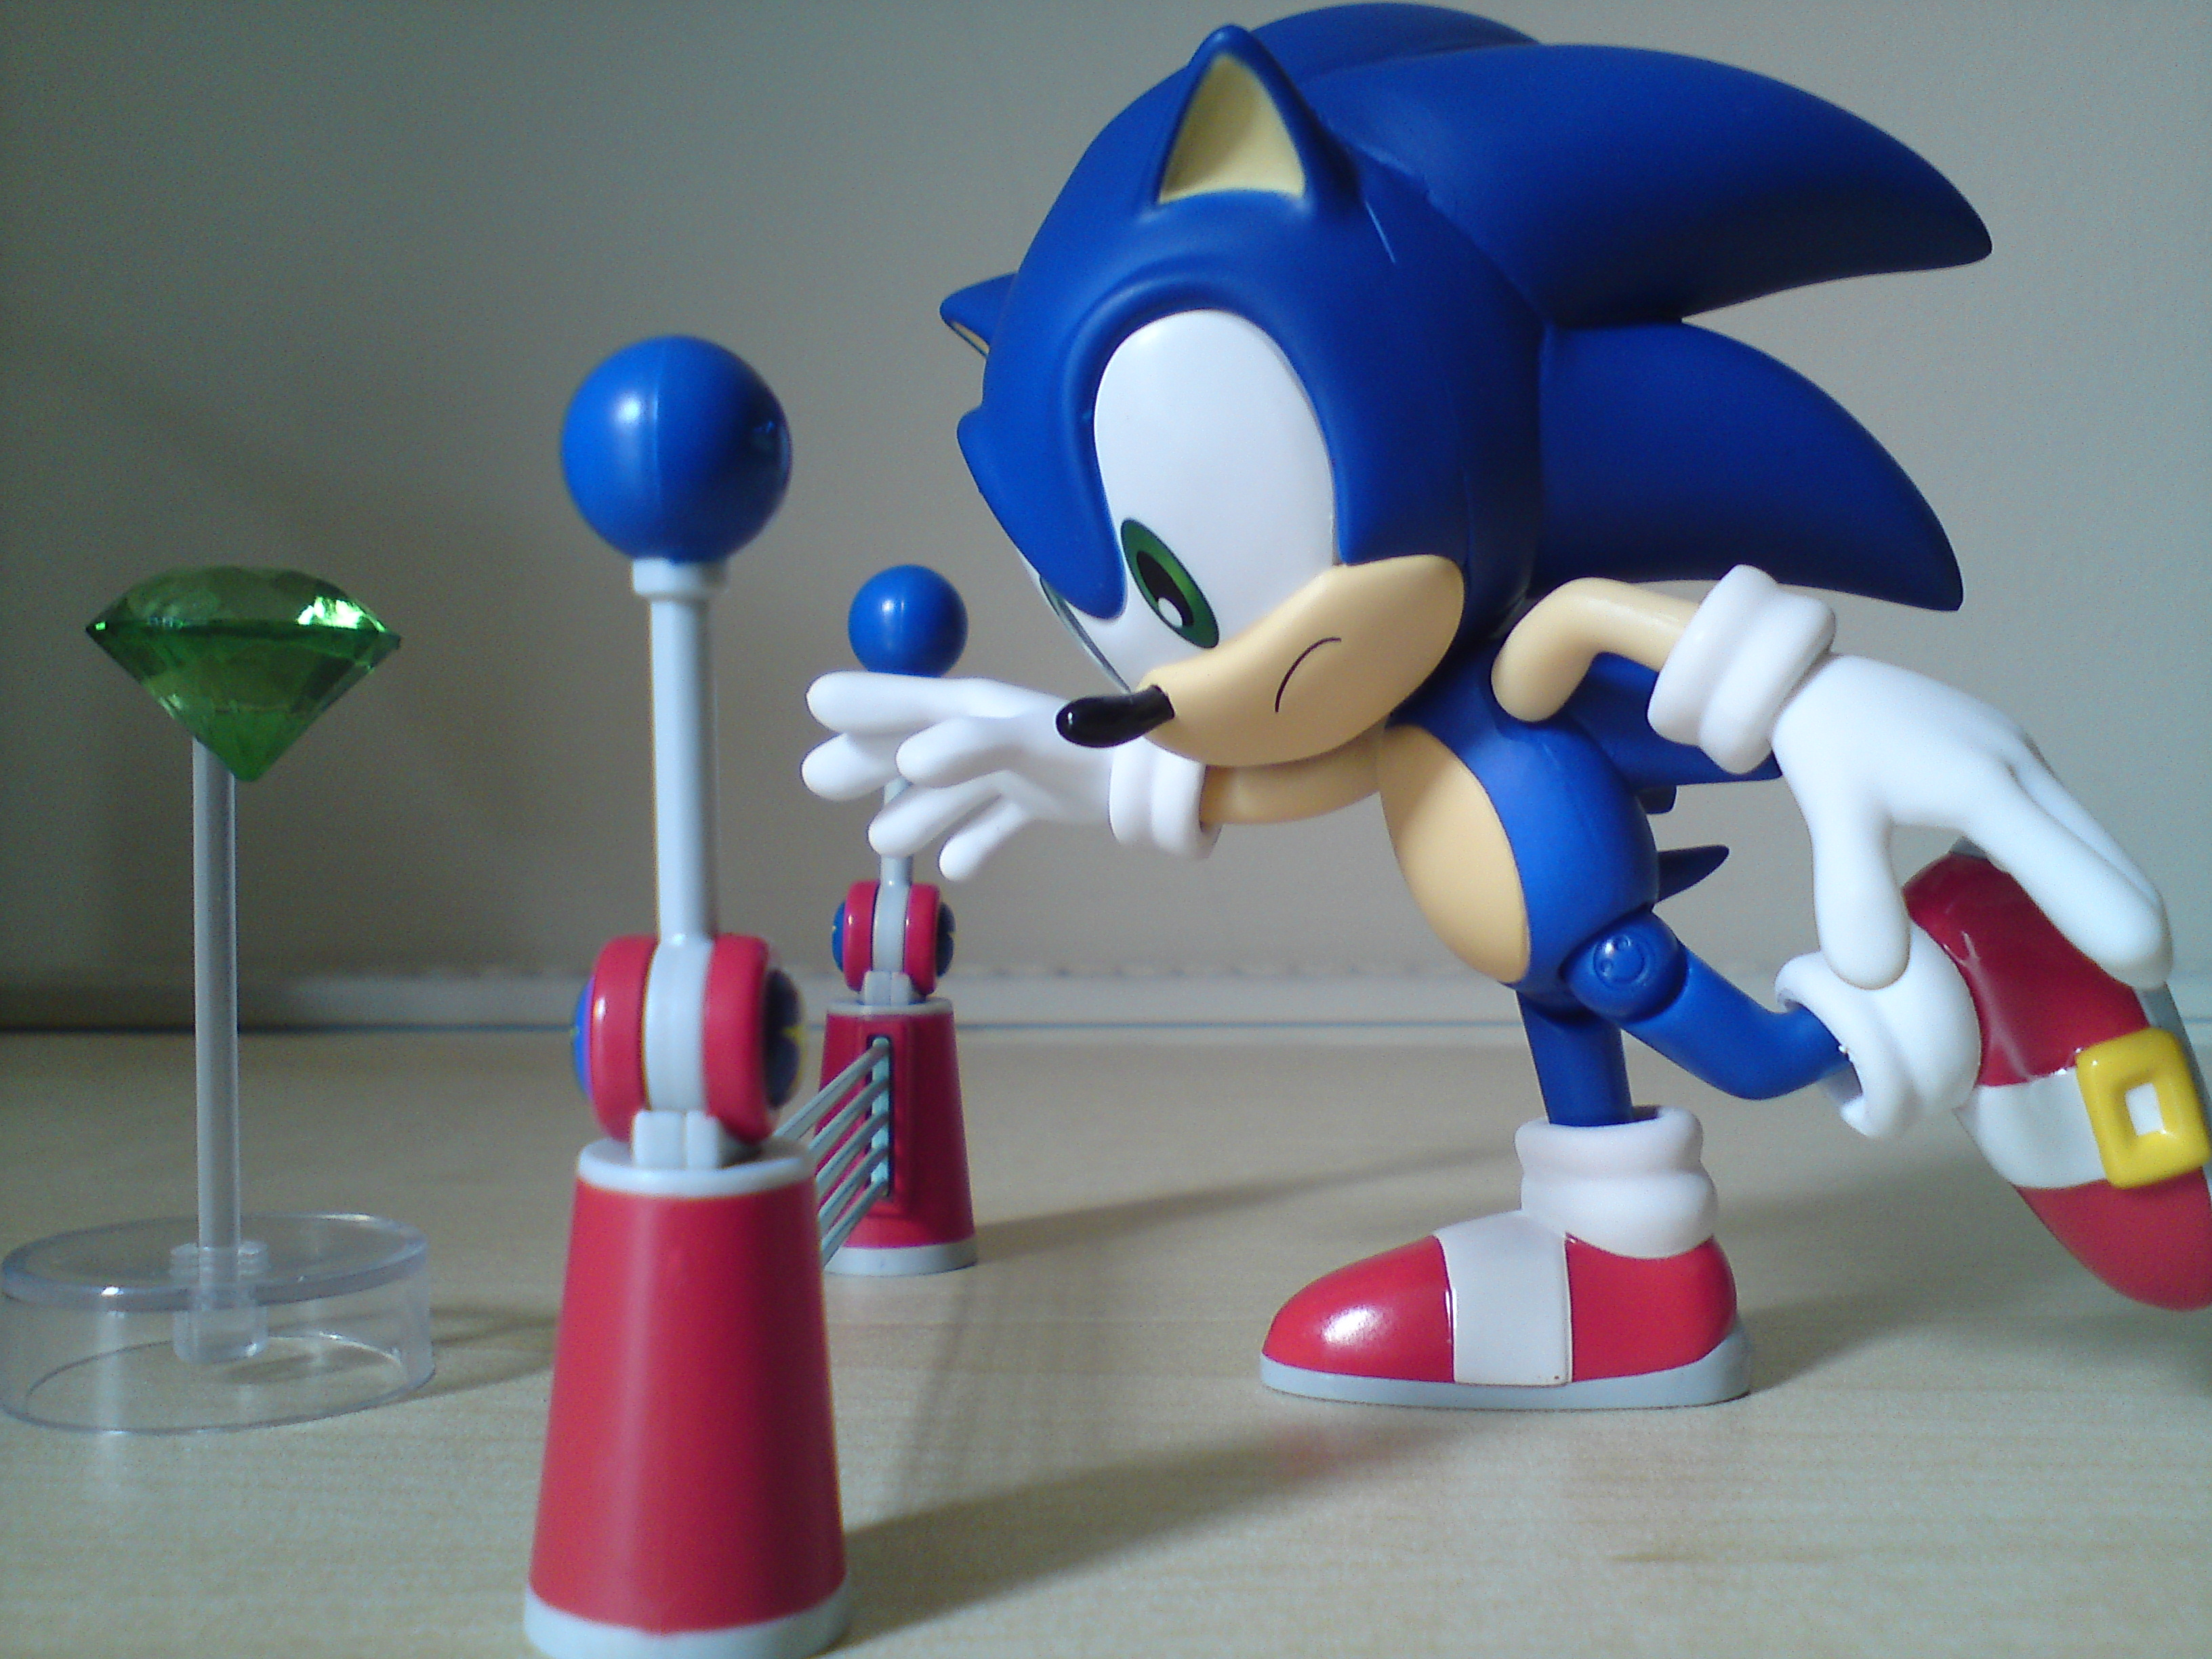 TSS Review: Sonic the Hedgehog Nendoroid Figure